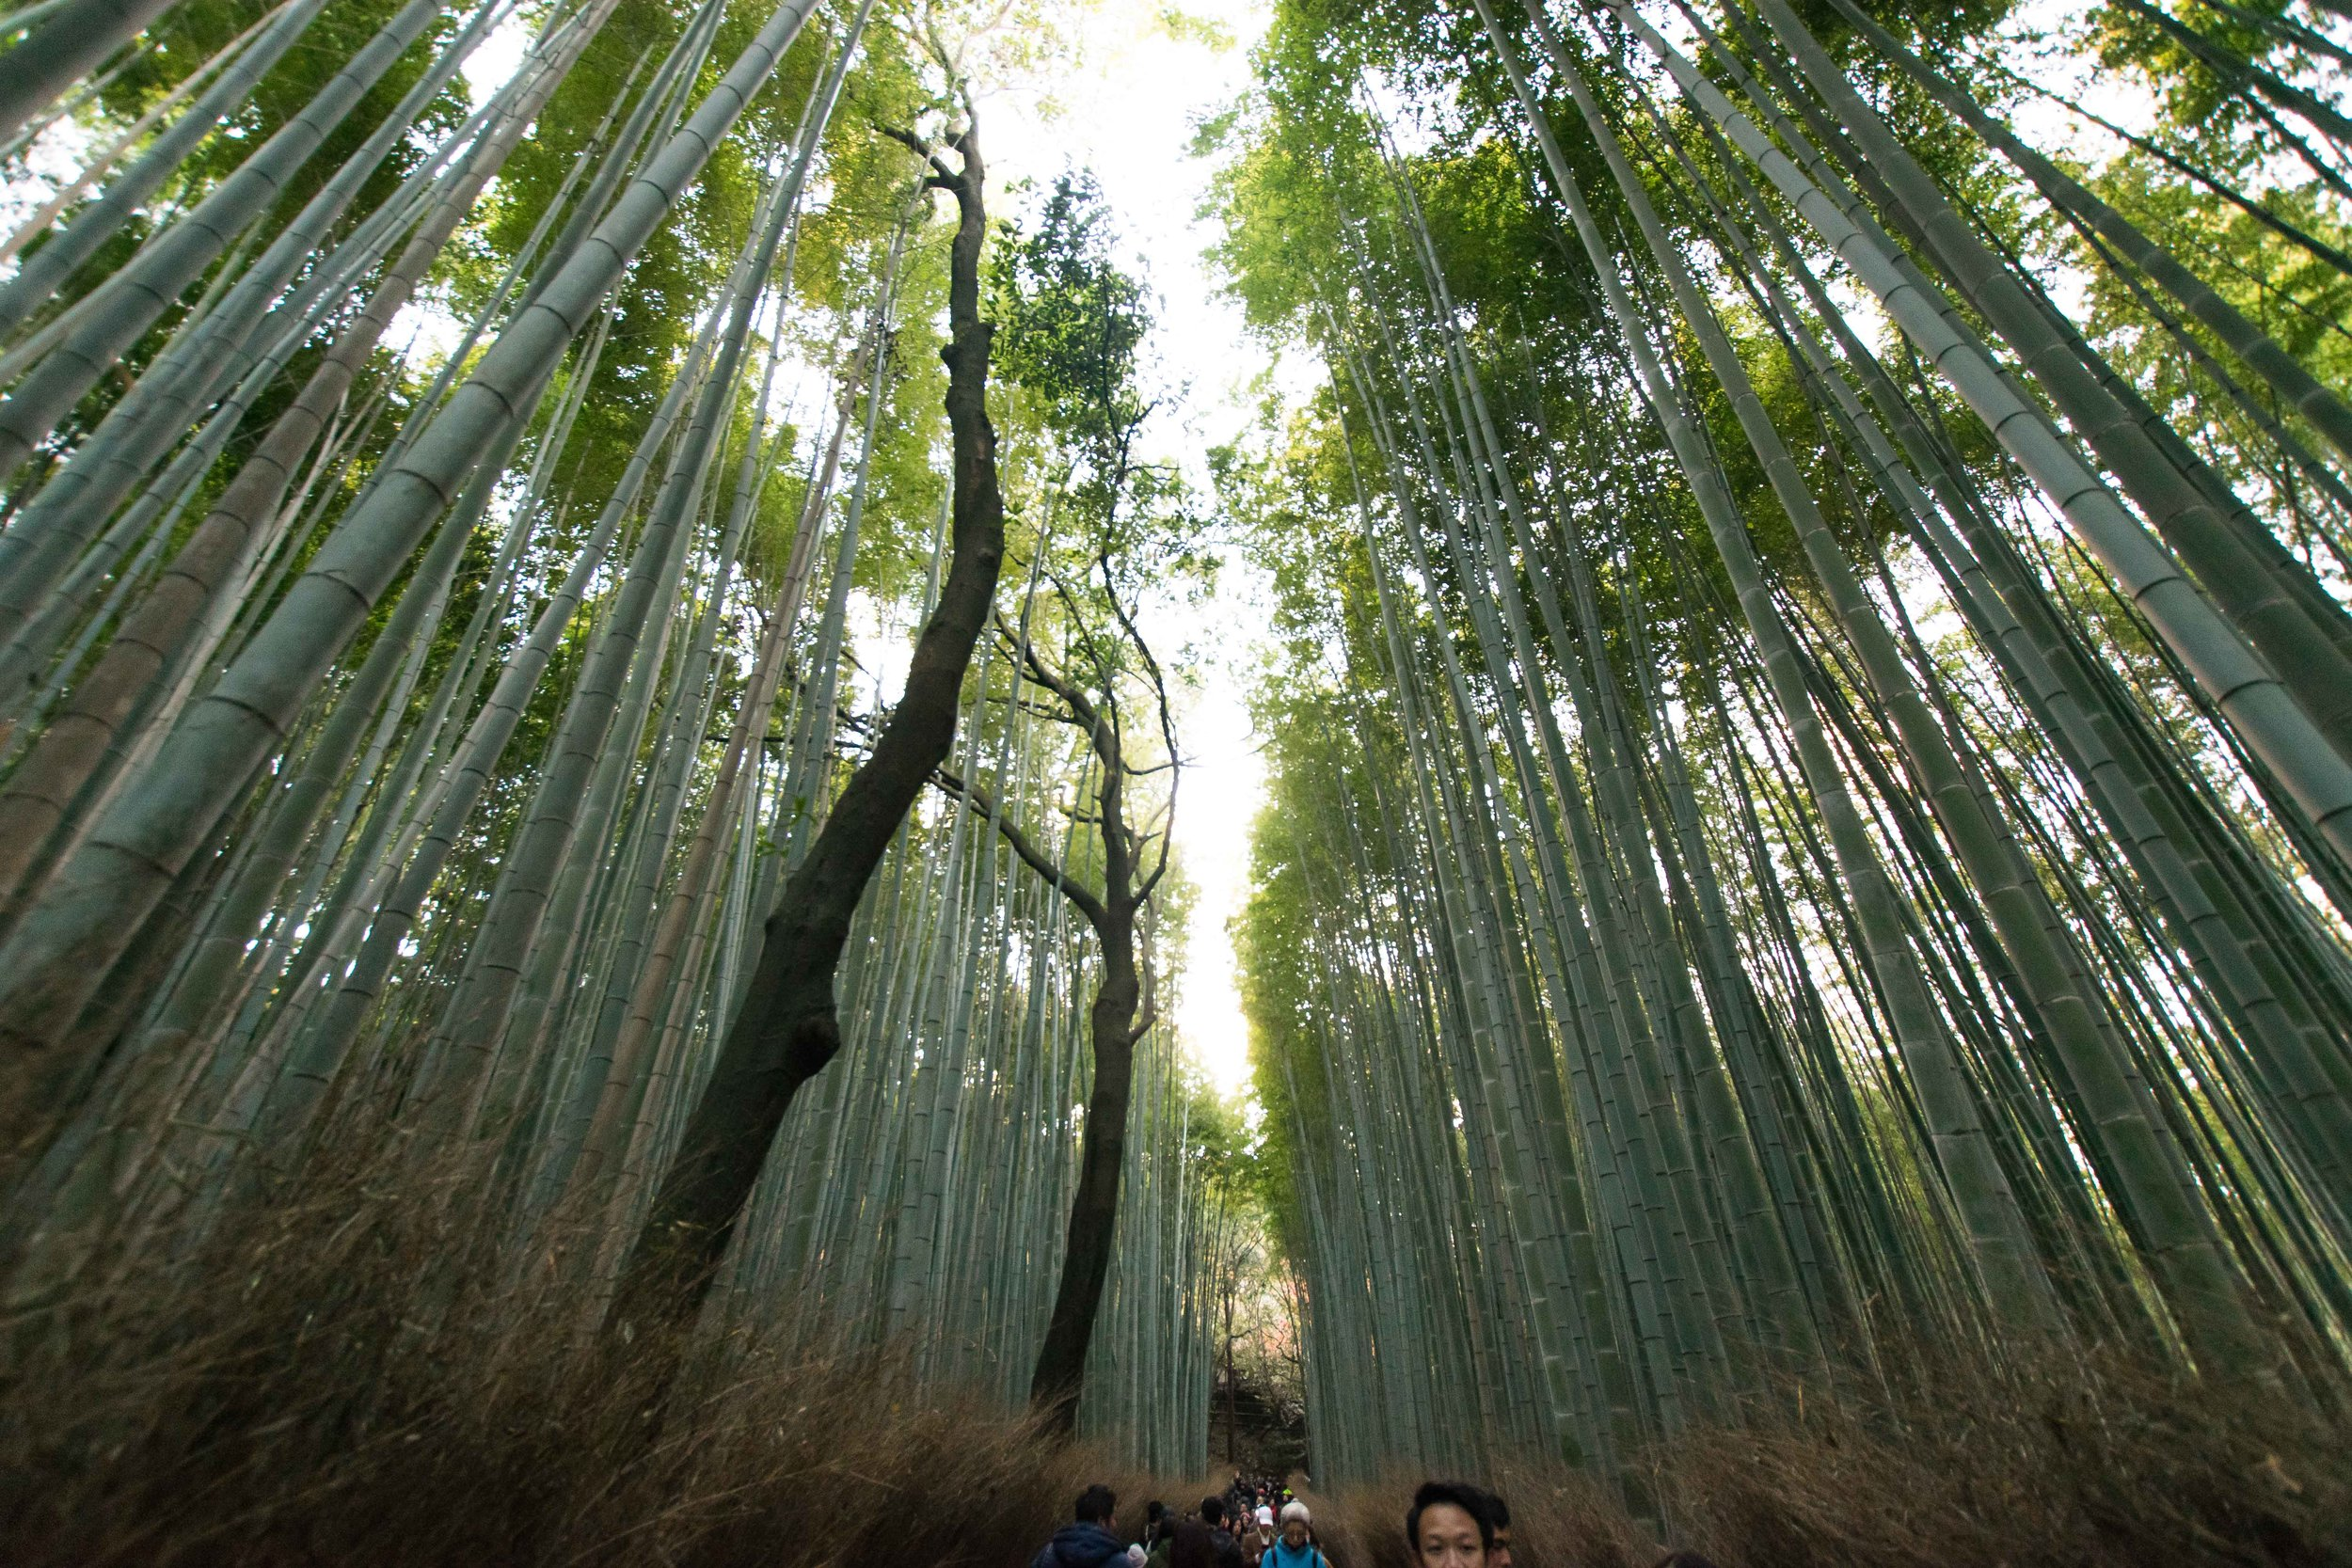 Bamboo forest outside of Kyoto